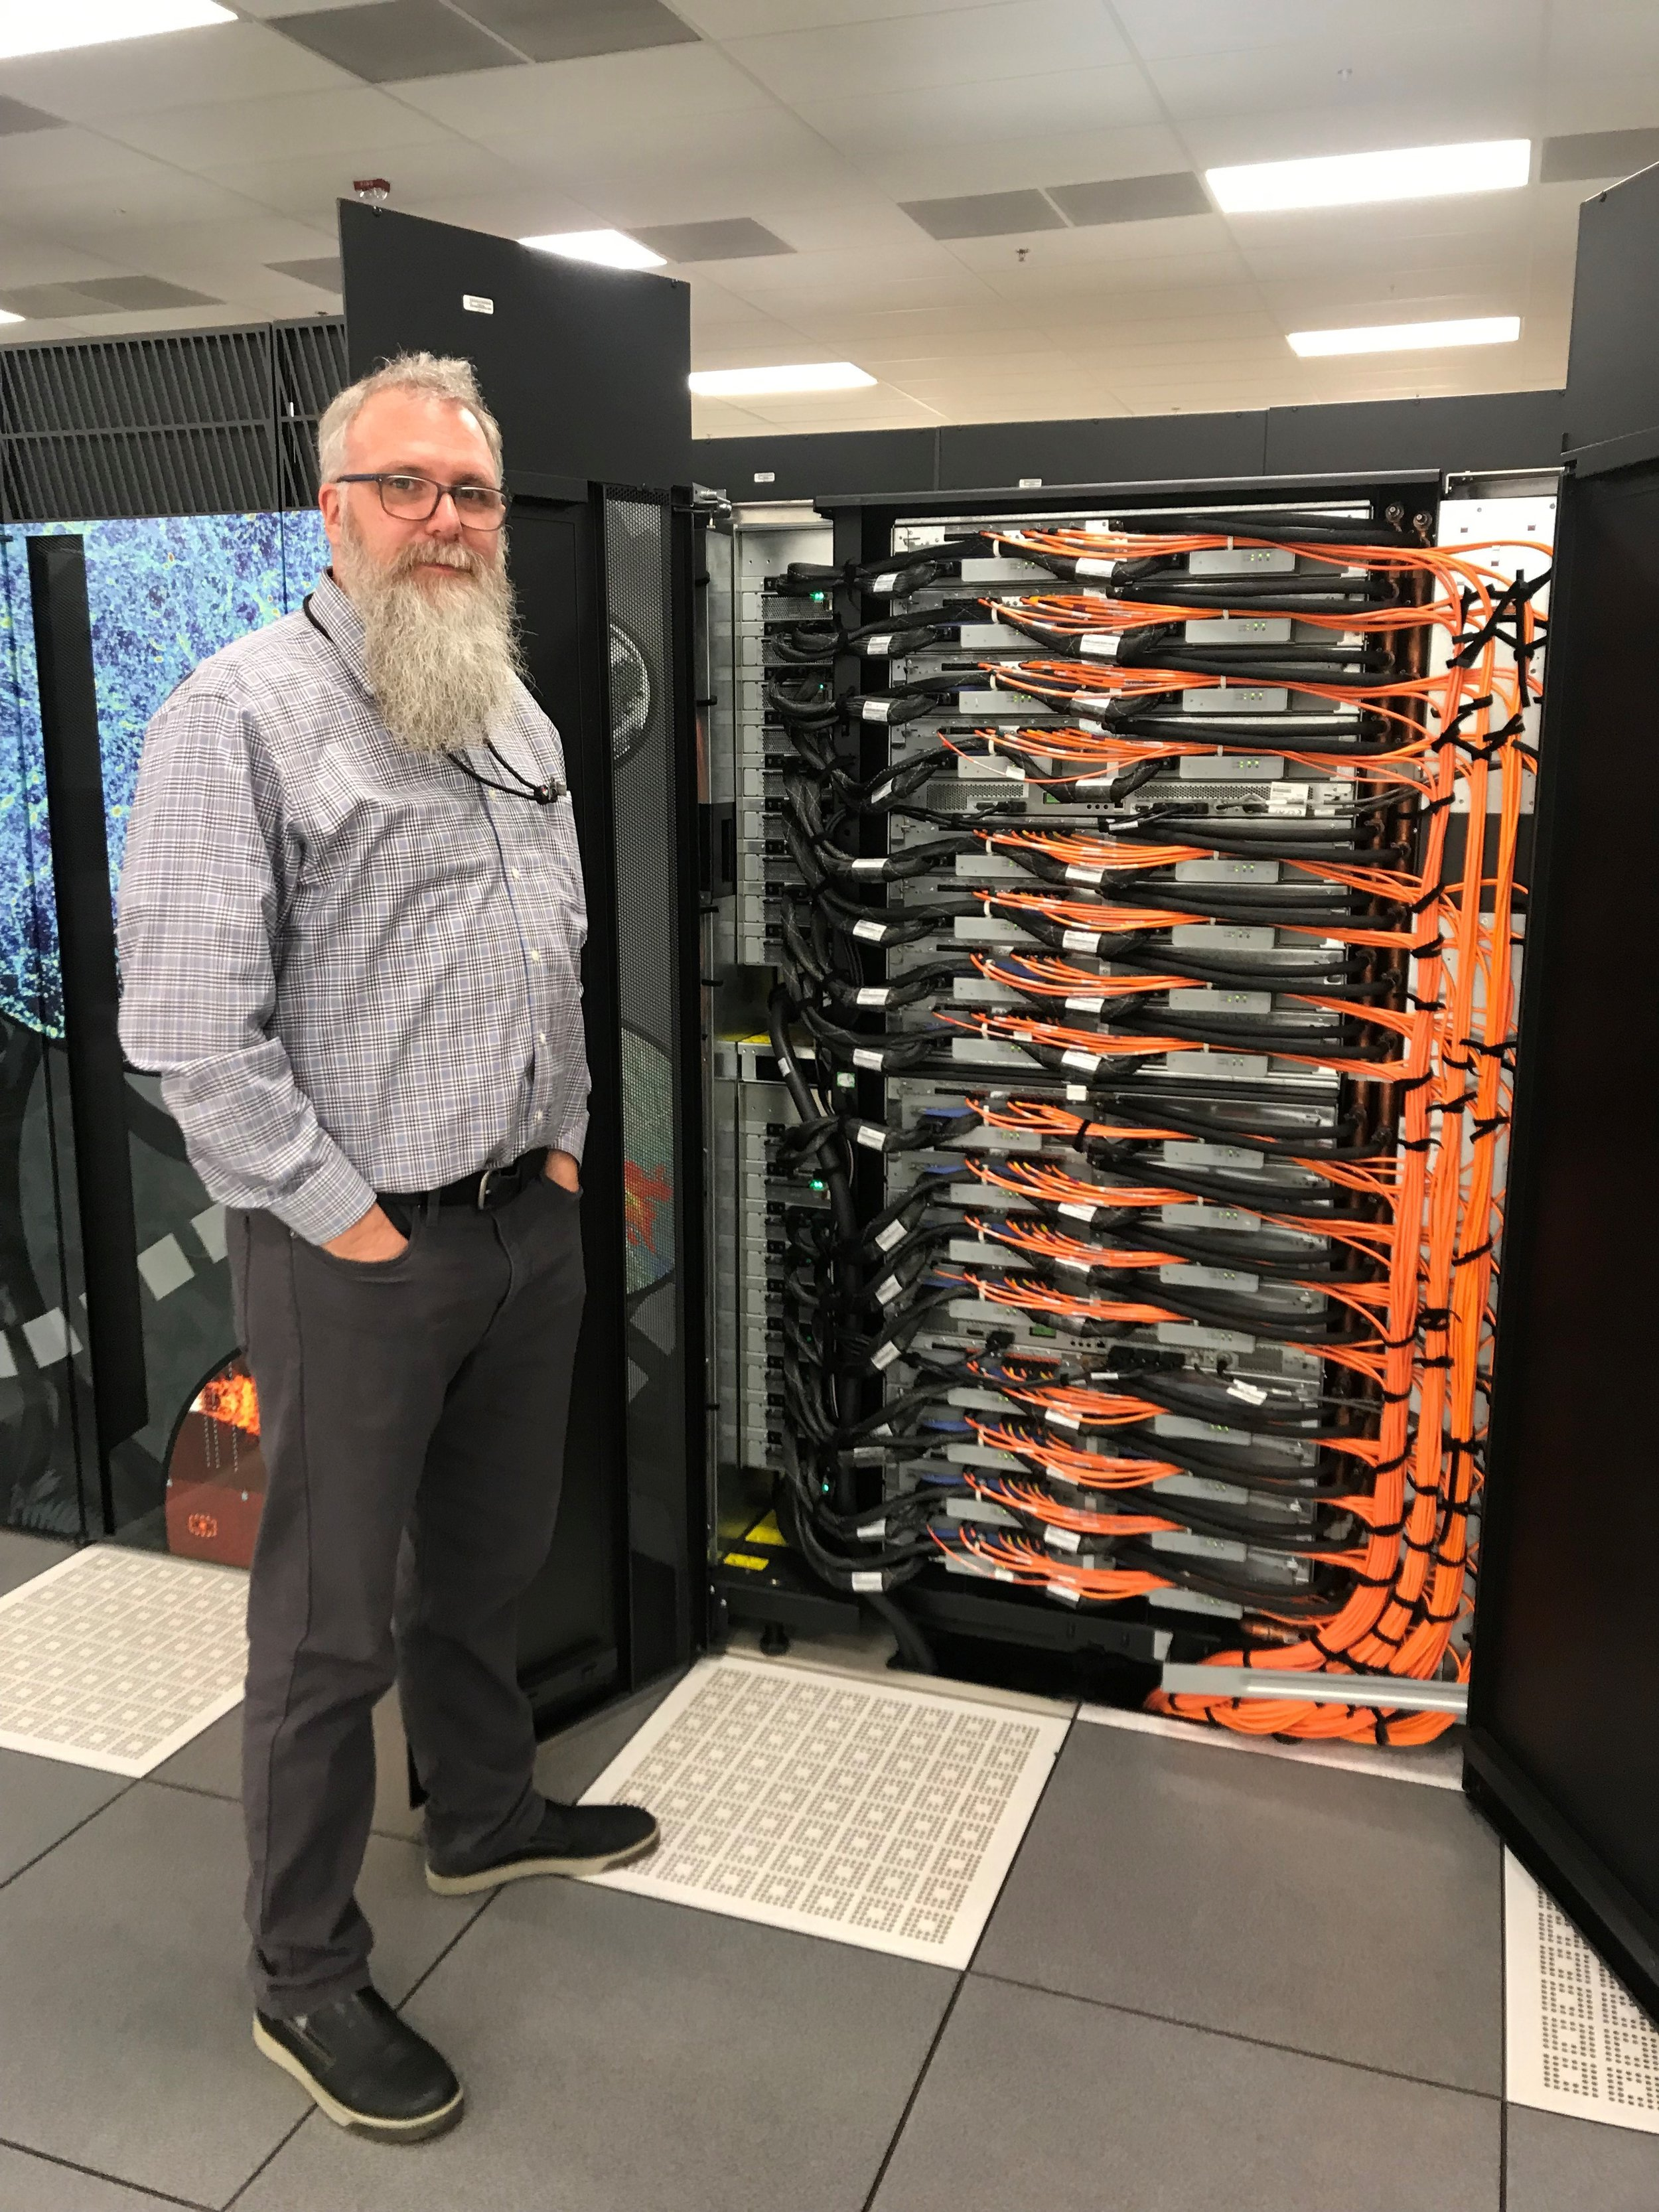 Michael Papka , the Division Director for the Argonne Leadership Computing Facility, standing in front of one of the Mira super-computer cabinets. The 48 computer cabinets each weigh two tons